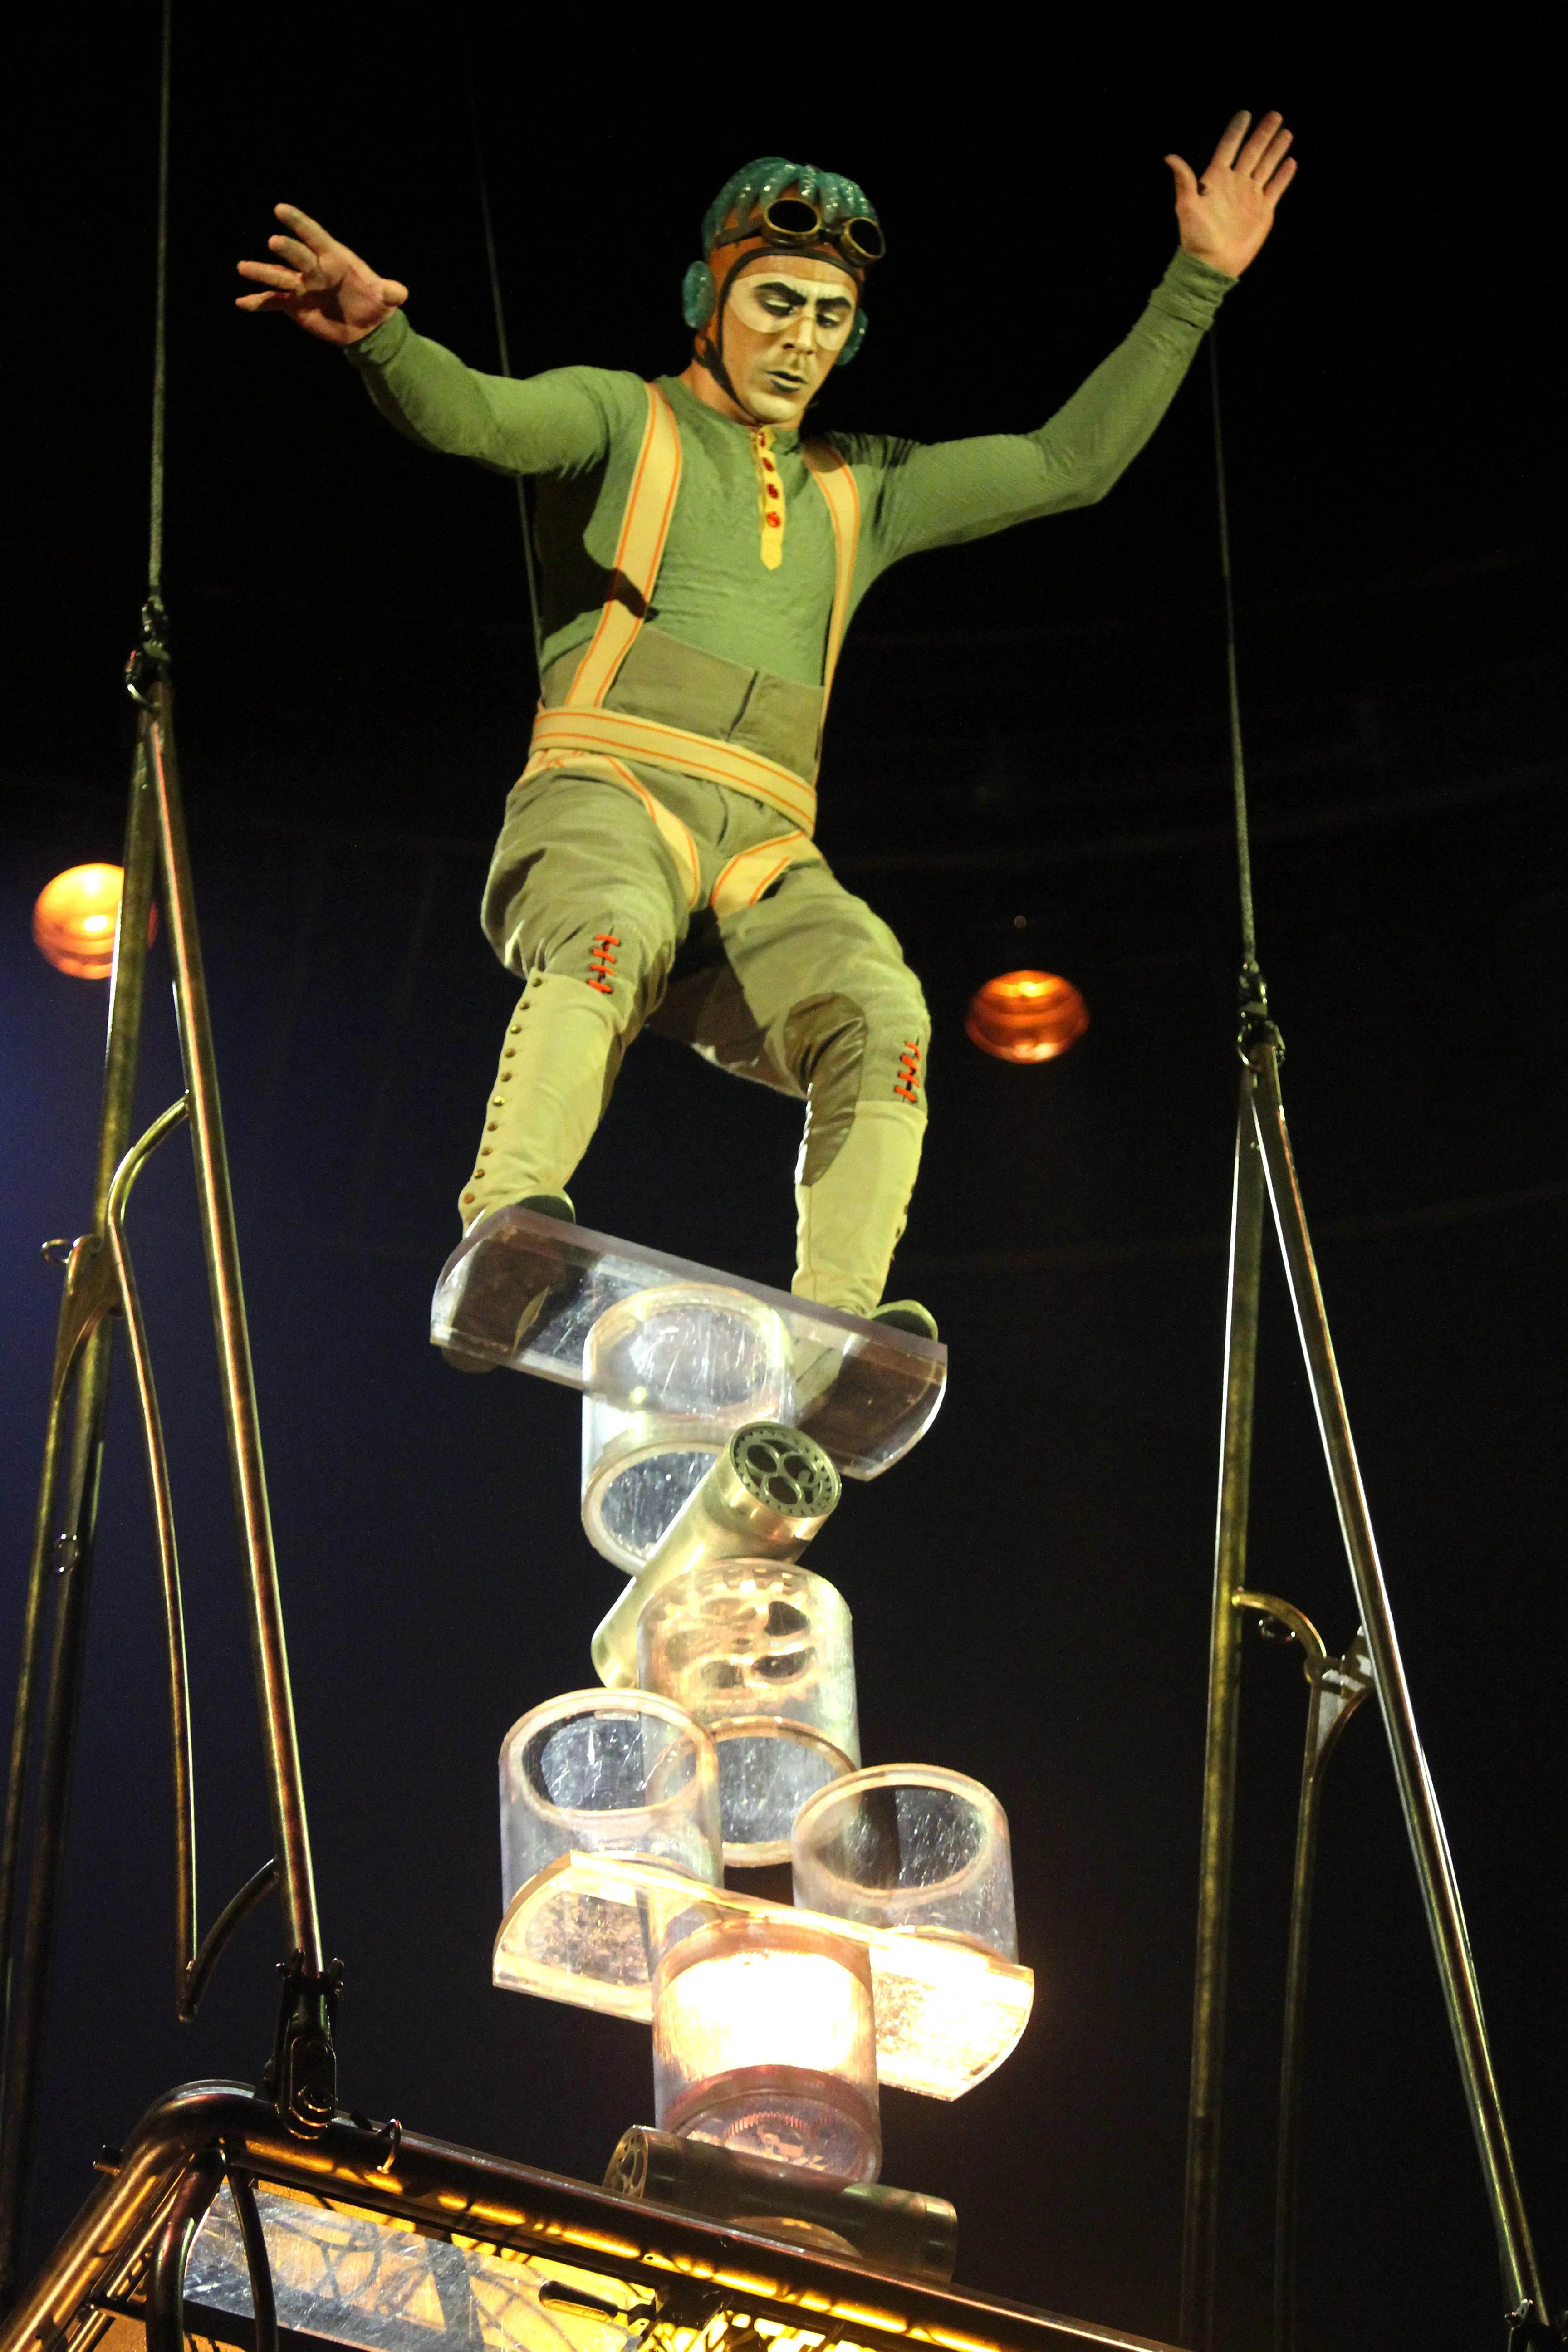 Steampunk Mode Cirque Du Soleil's 'kurios' Thrills In Steampunk Mode